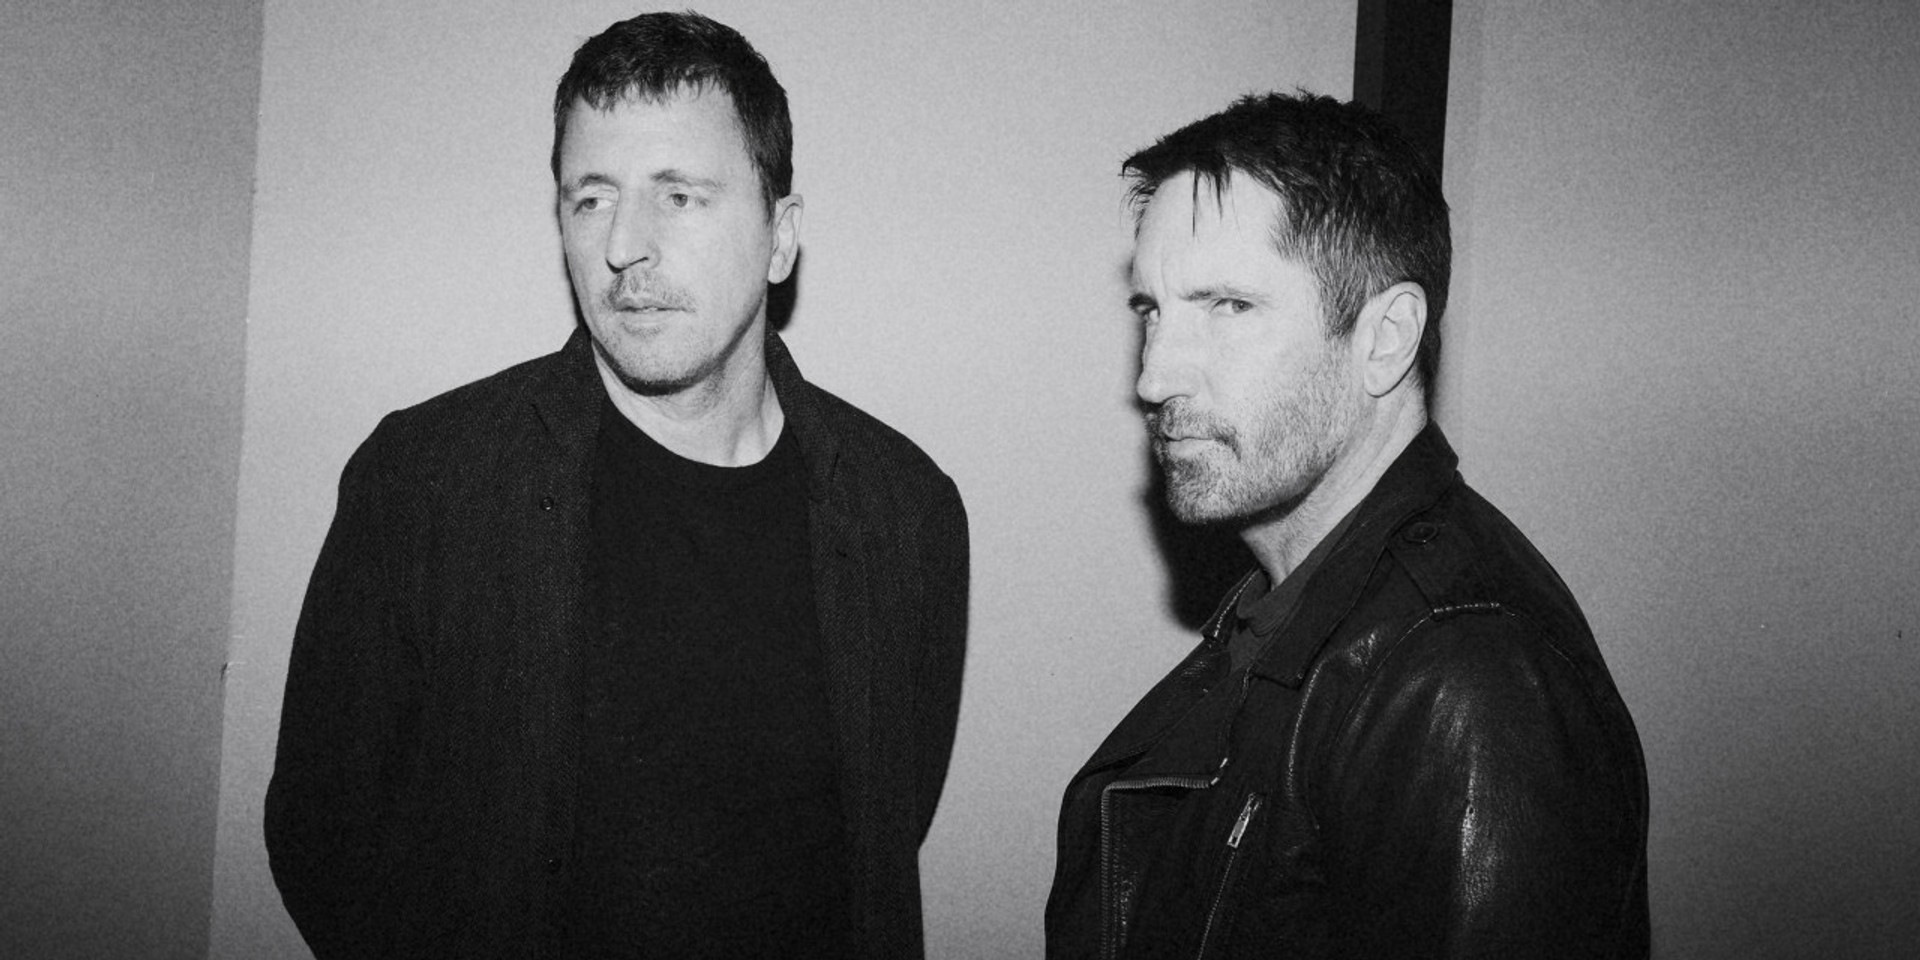 NINE INCH NAILS to record new album and tour in 2020